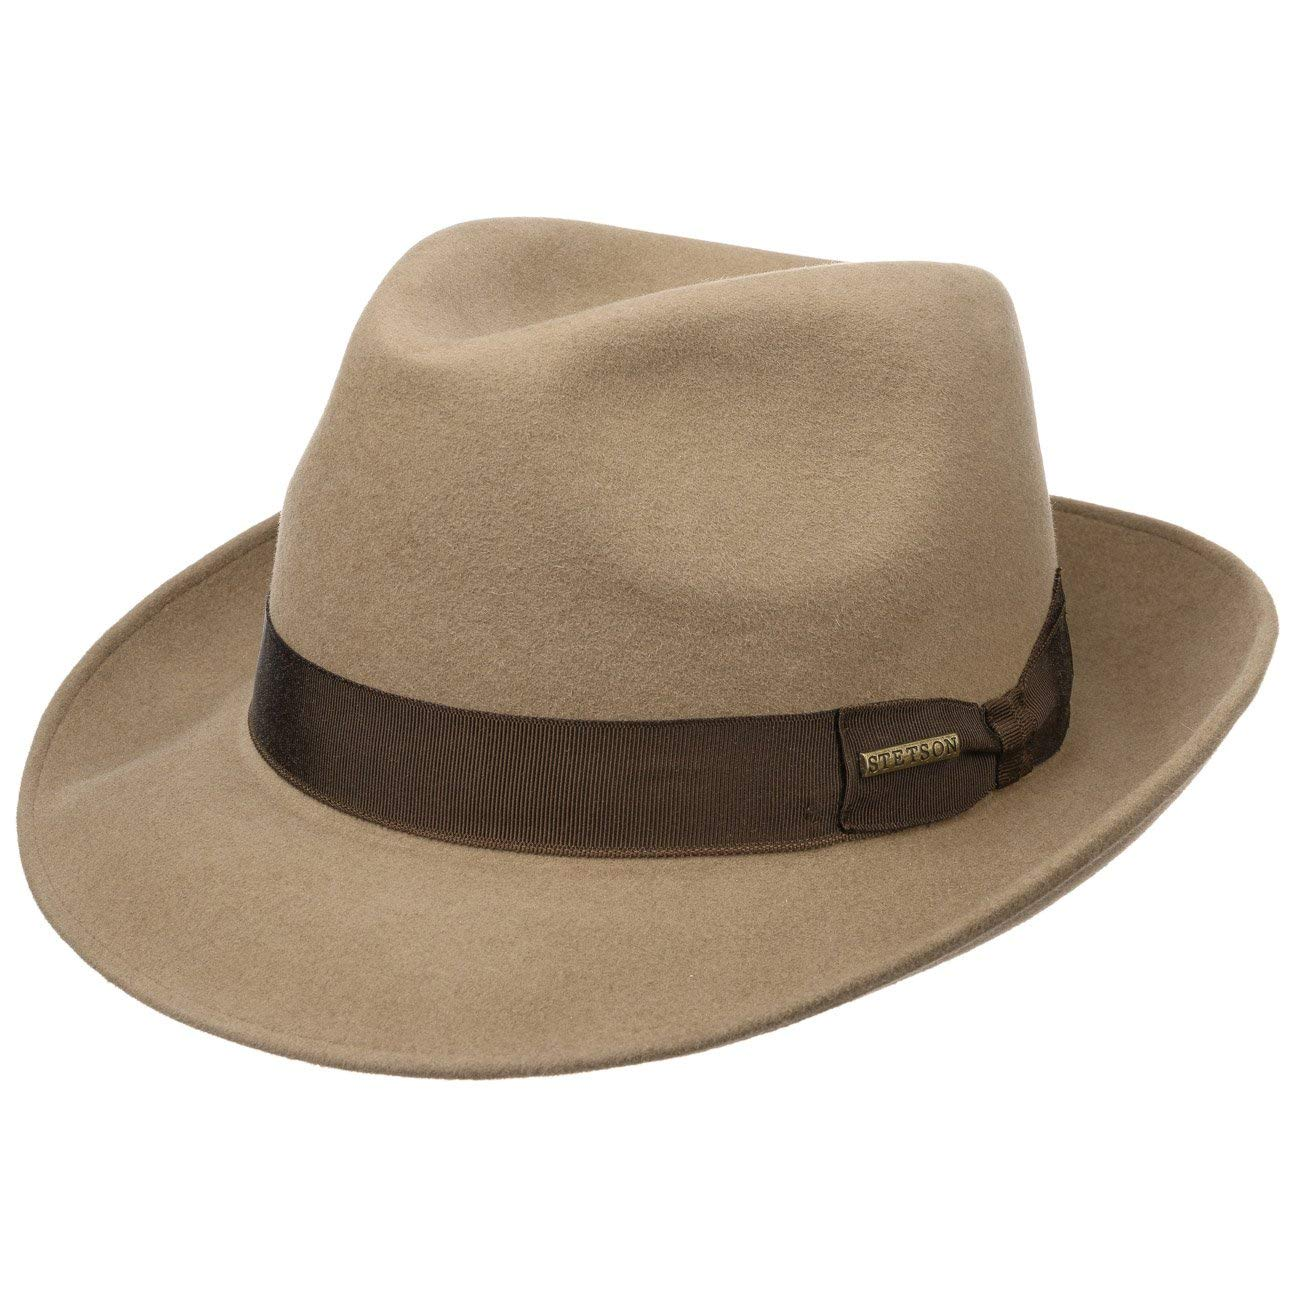 Stetson Rossford Fur Felt Bogart Hat Women/Men Beige 6 7/8